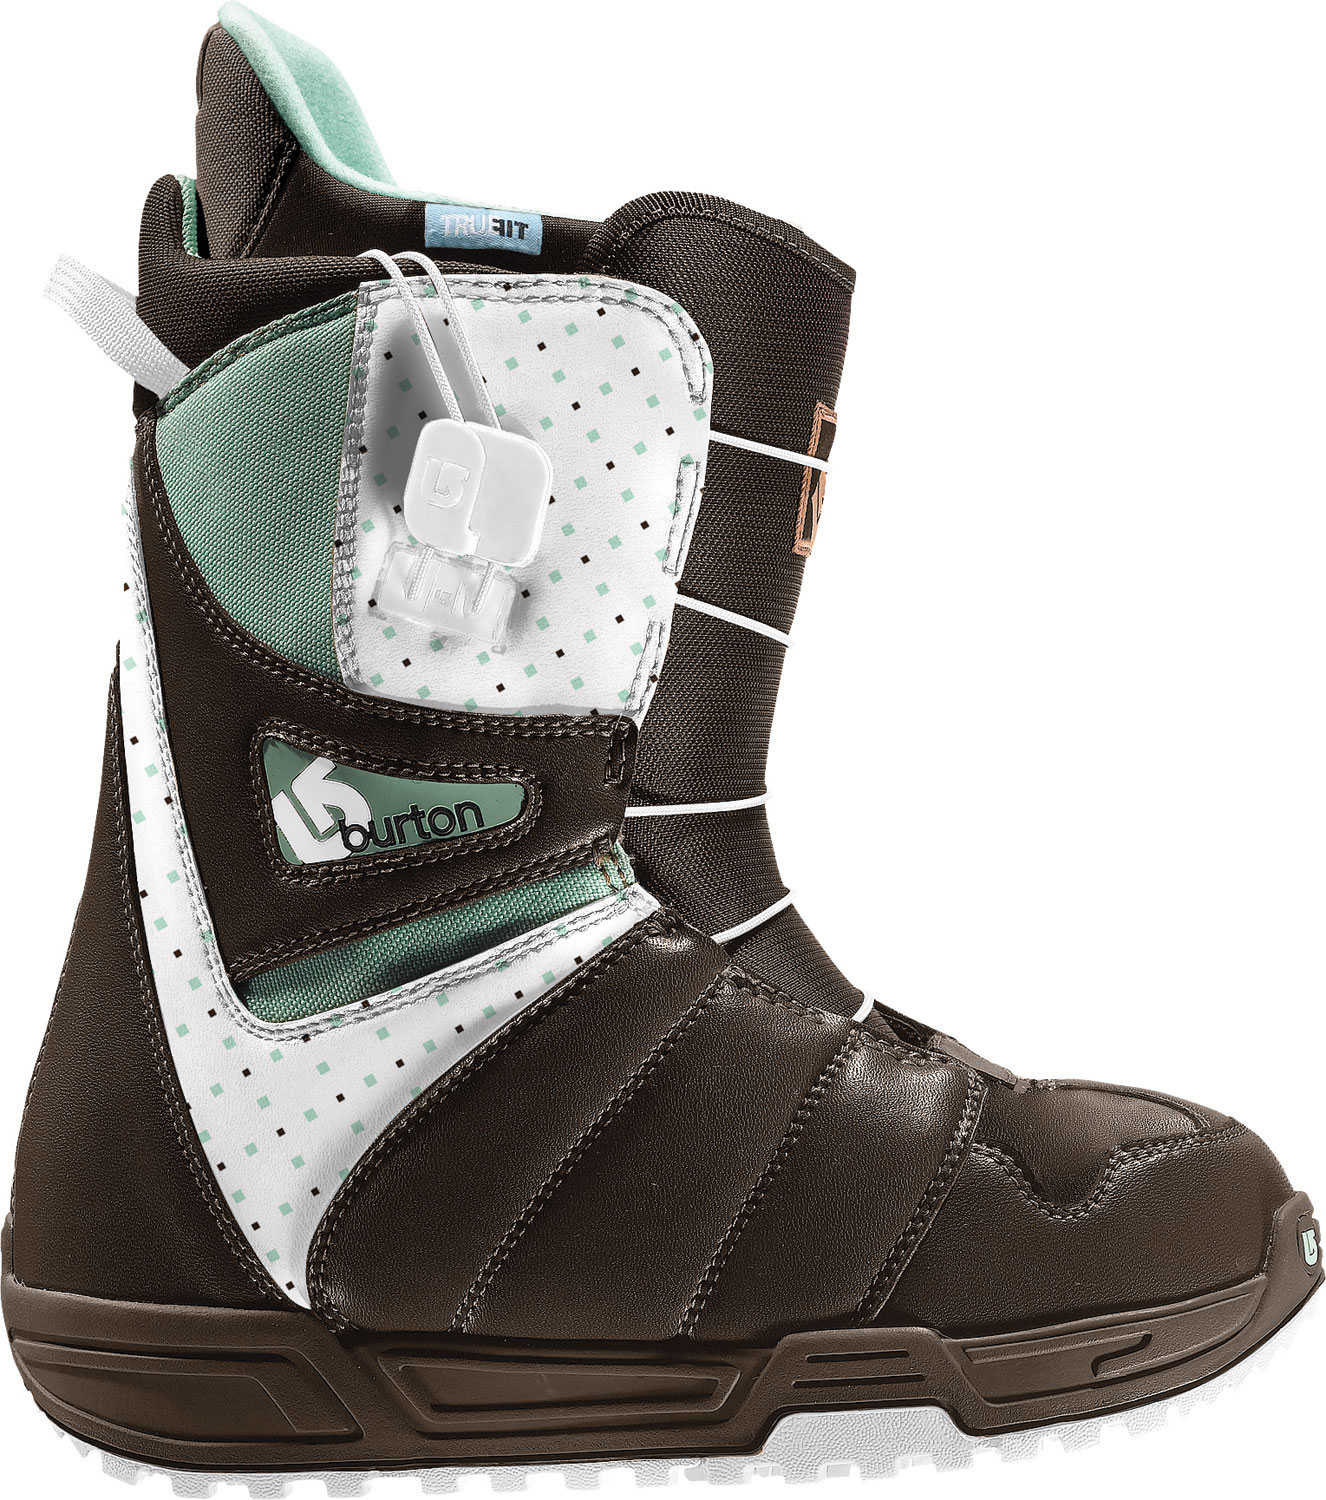 Snowboard Get right to the good times with the world's #1 boot. Loaded with quality and convenience at a price that is downright dope, it is easy to see why the Mint has been the world's bestseller six years straight. Burton's heat-moldable Imprint liner conforms to the exact contours of your feet, while True Fit means a down to the details design that shapes everything (even the lace guides!) around a women's foot shape. Speed Zone Express wraps the entire package with the simplicity of a single-pull lacing system.Key Features of The Burton Mint Women's Snowboard Boots: Lacing: Speed Zone Express [Single Pull Lacing Simplicity] Liner: Imprint 1 Liner with True Fit Design Cushioning: 2-Part Outsole with EVA Cushioning and Rubber Ice Spikes Flex and Response: Grip Fit Backstay and Soft Flex Thin Profile 3D Molded Tongue Comfort: Level 1 Molded EVA Footbed The World's Bestselling Women's Boot Six Years Running Support: 3 - $82.95